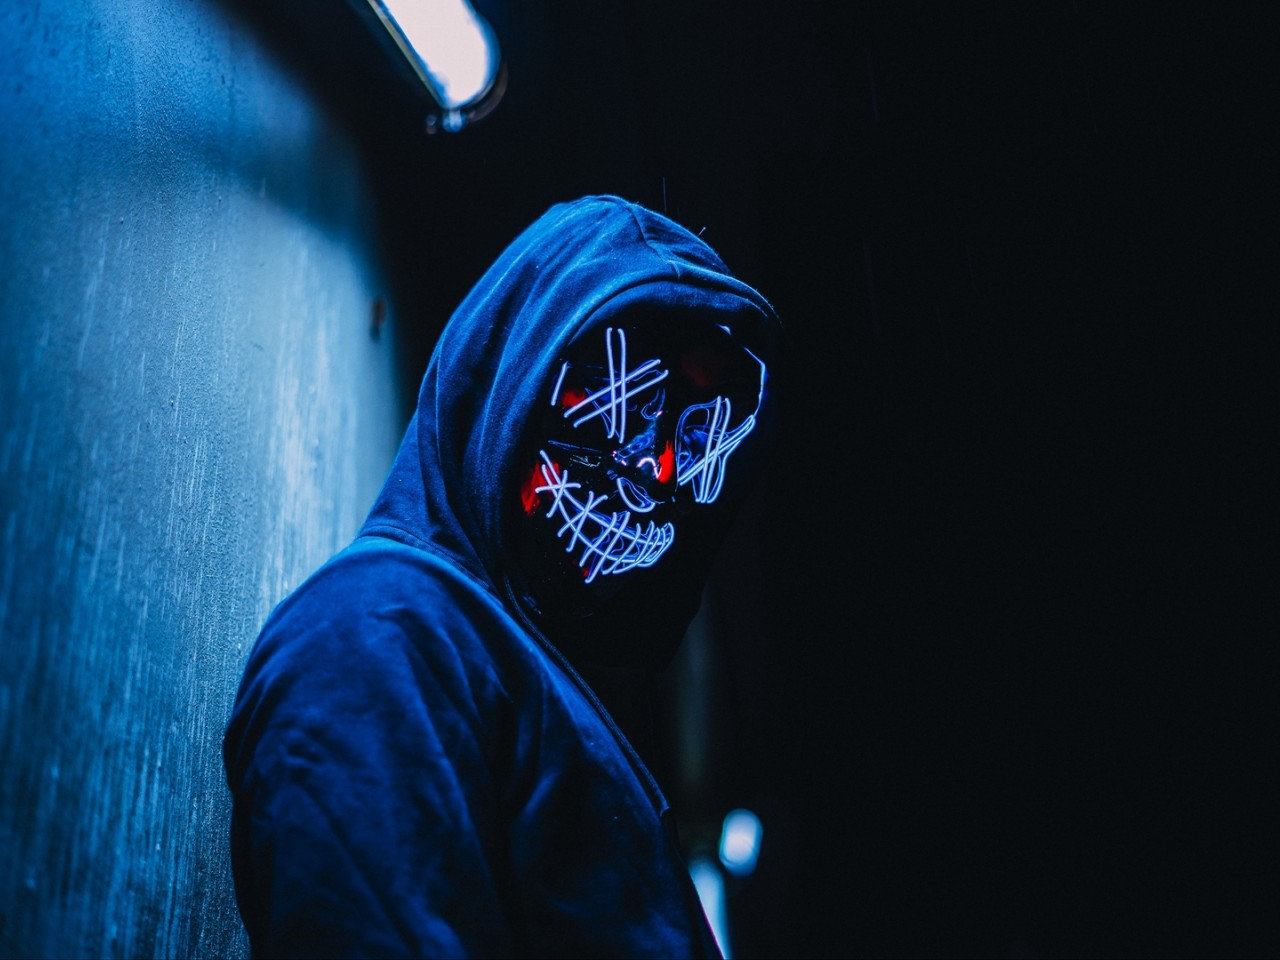 Glowing mask at the dark HD Wallpaper